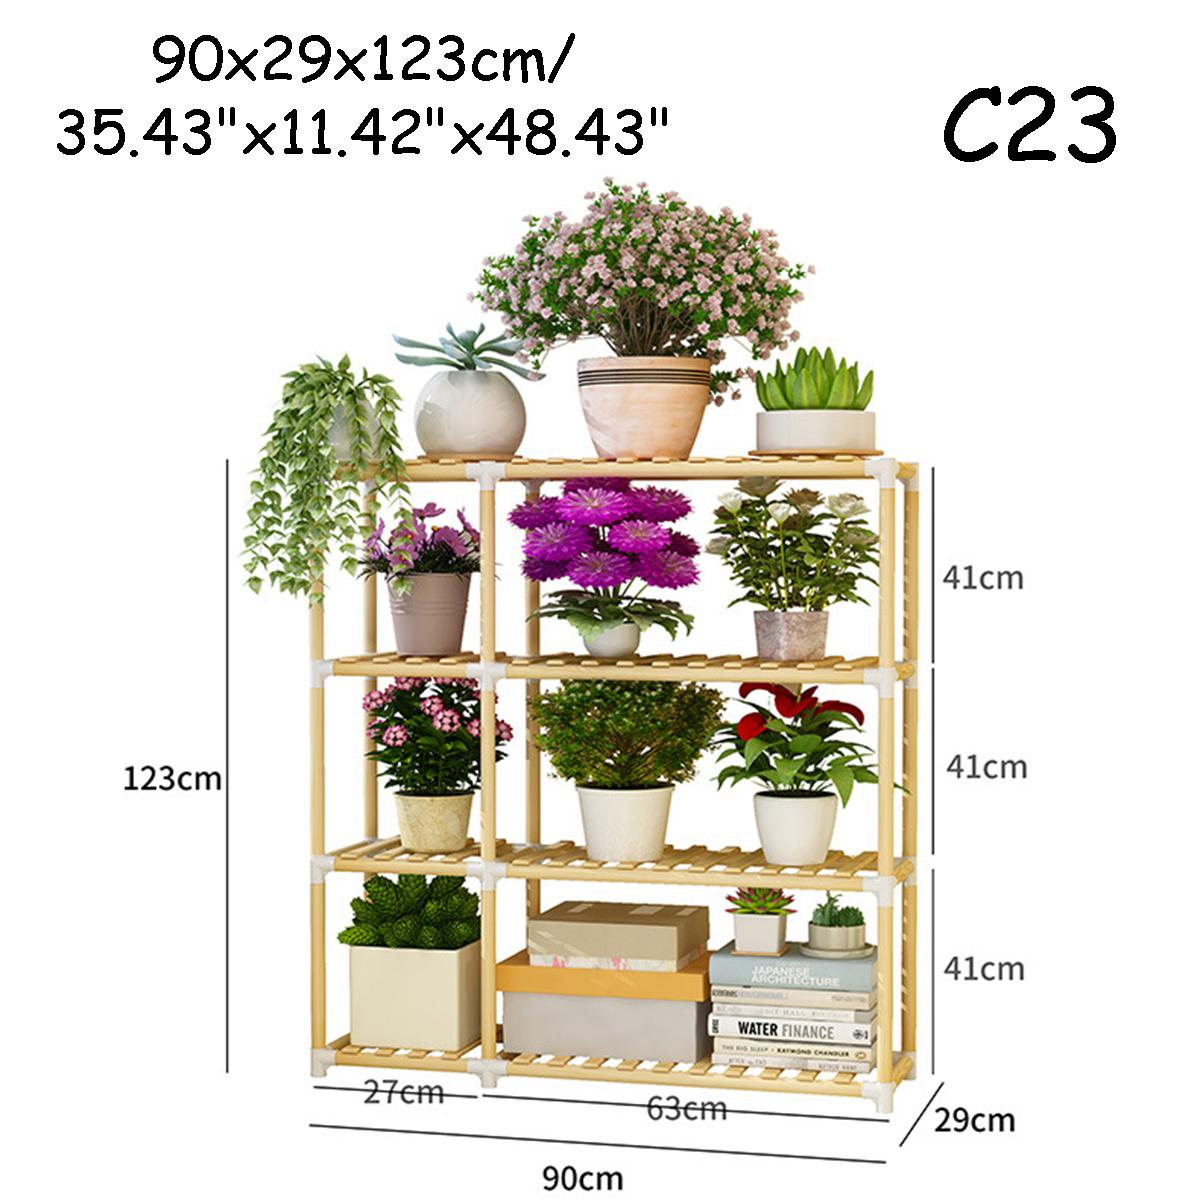 small large wooden plant stand indoor outdoor patio garden planter flower pot stand shelf c23